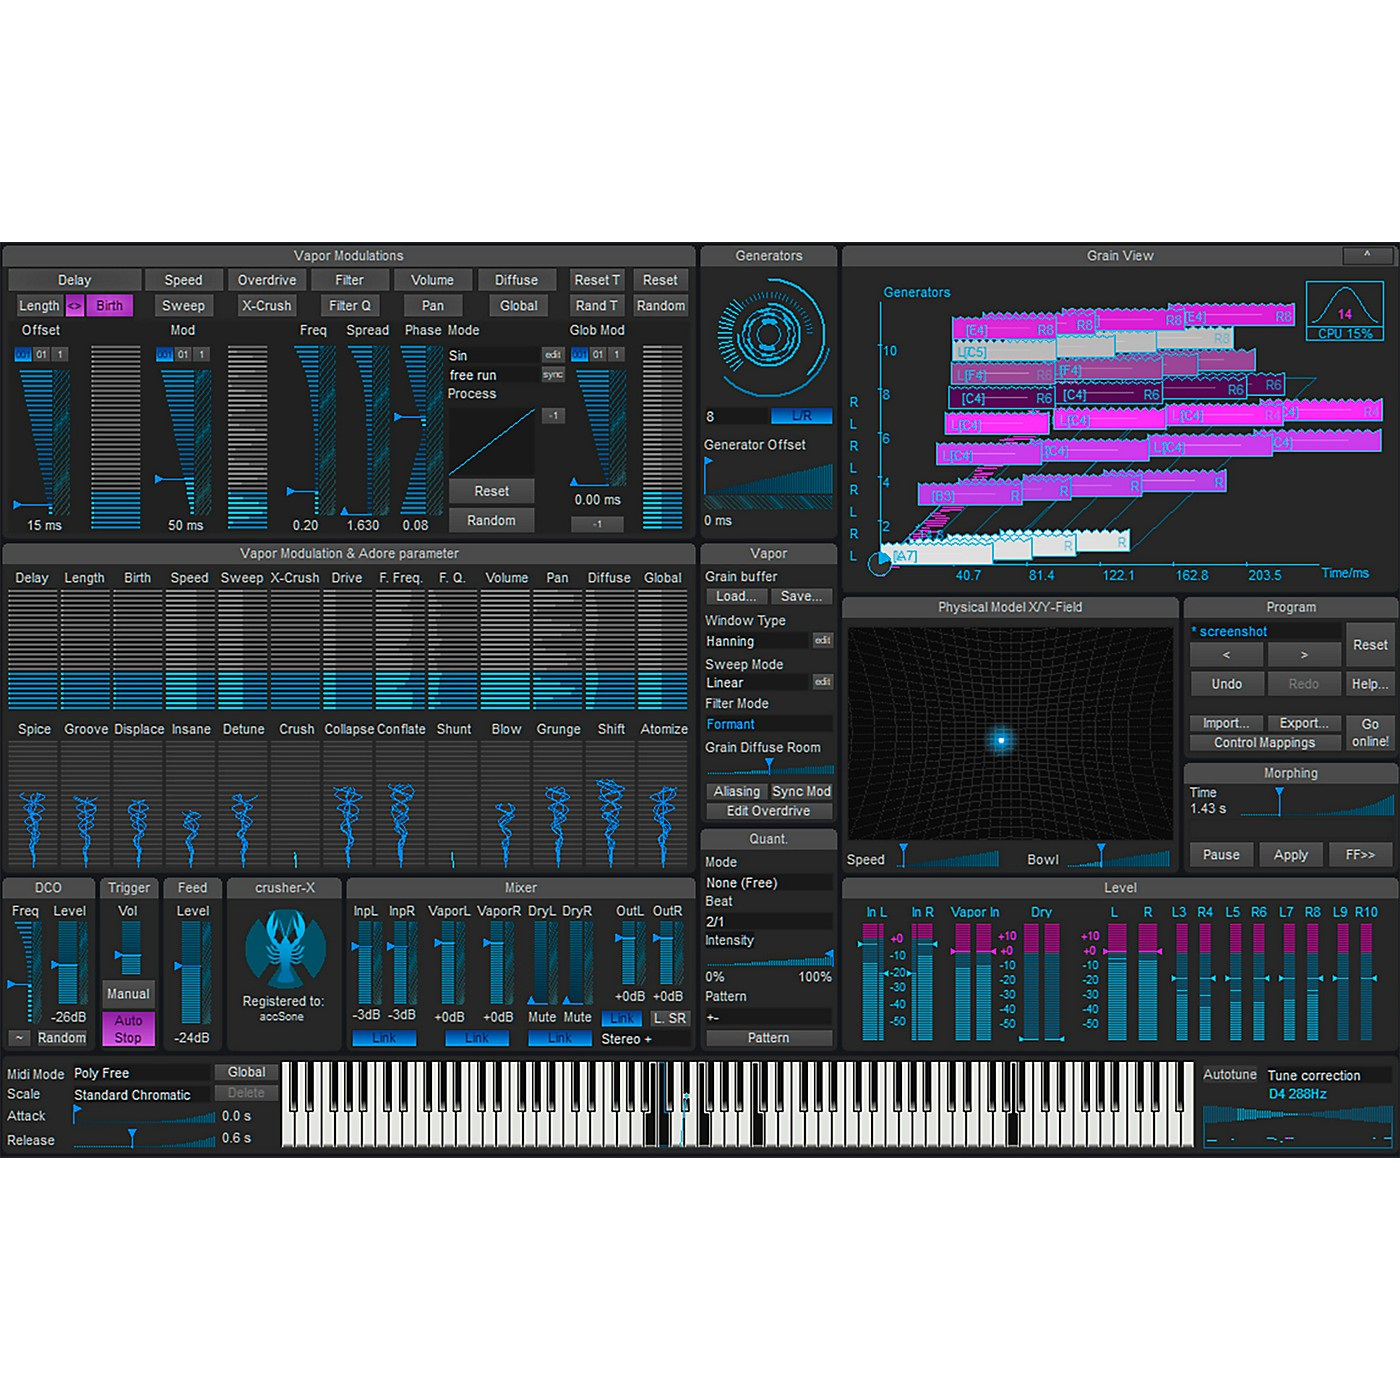 accSone Crusher-X 7 Synthesizer Software Download thumbnail